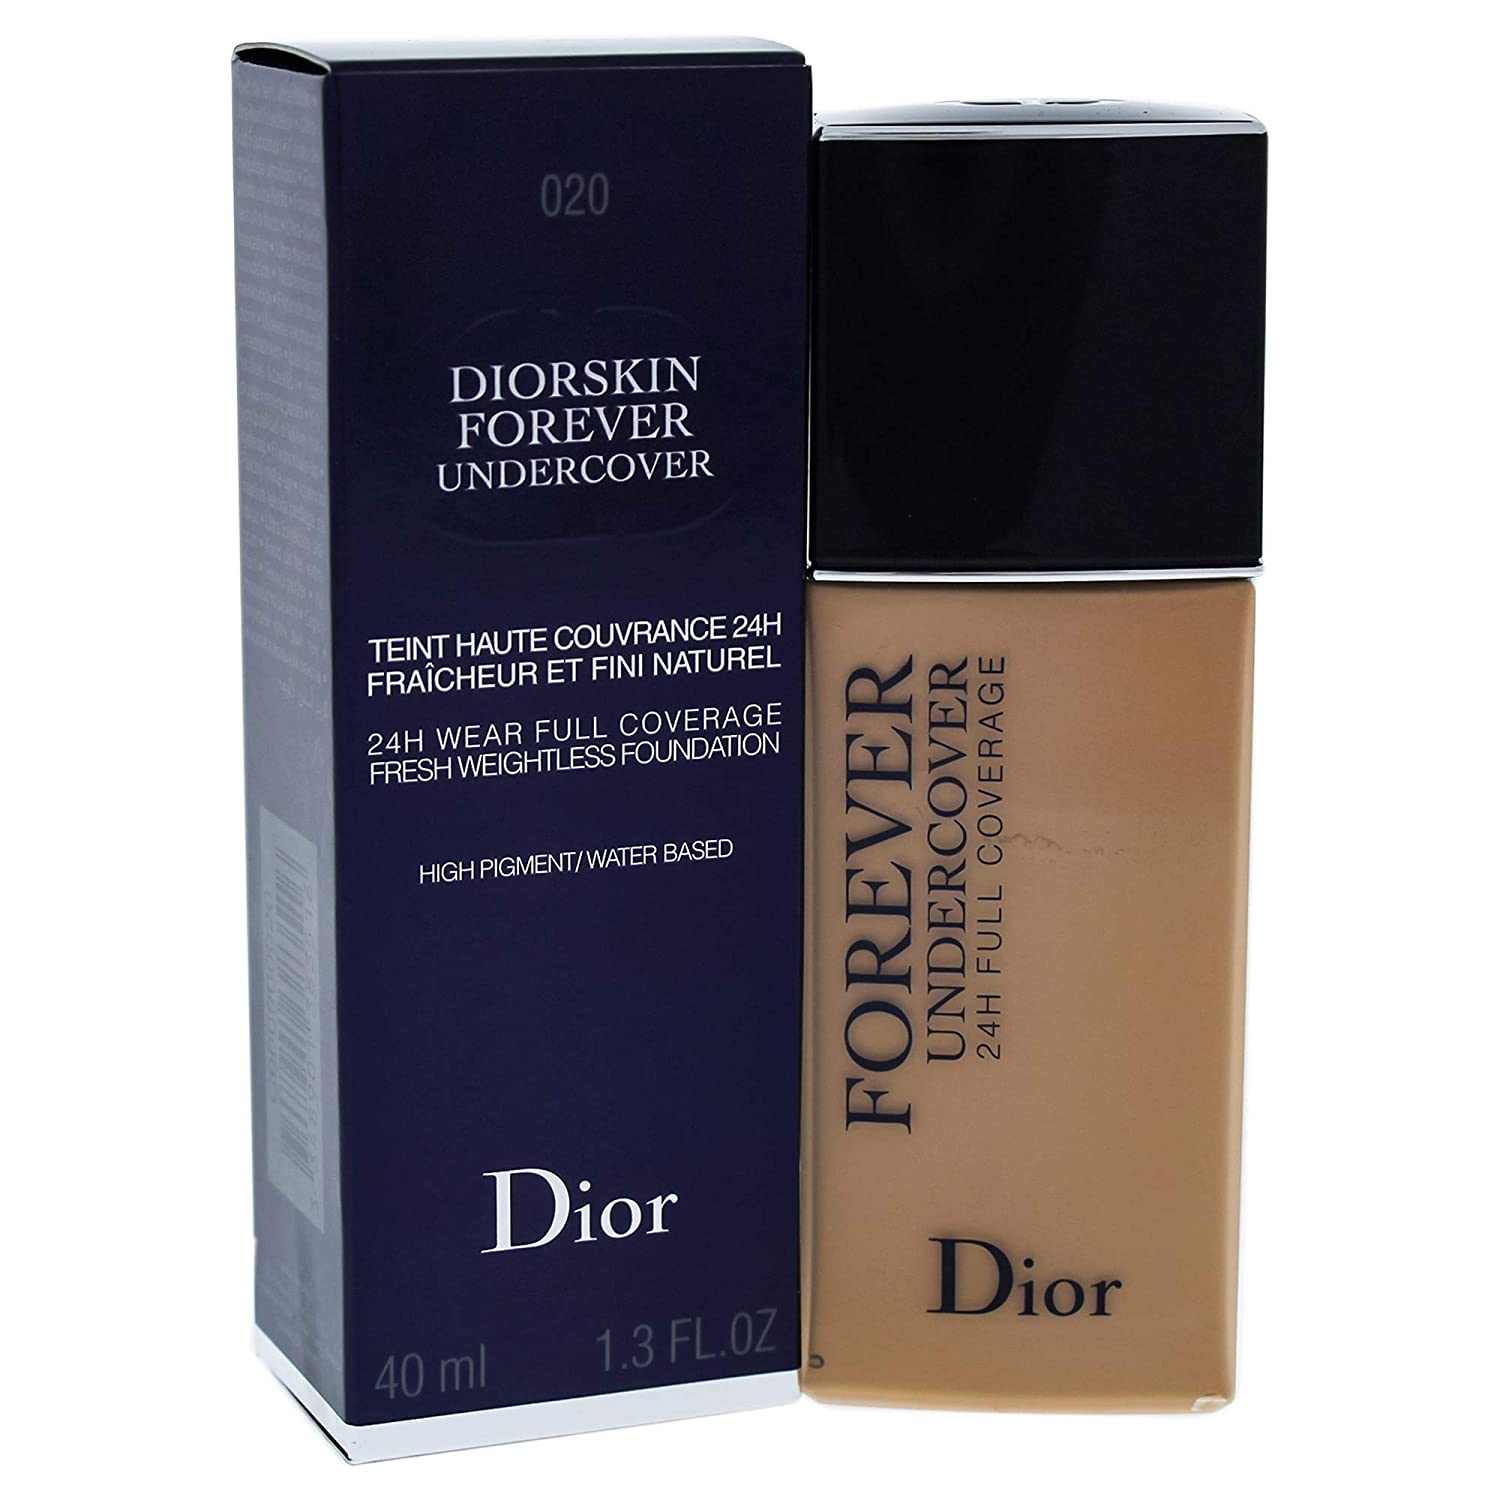 Christian Dior Diorskin Forever Undercover Foundation for Women, 020 Light Beige, 1.3 Ounce